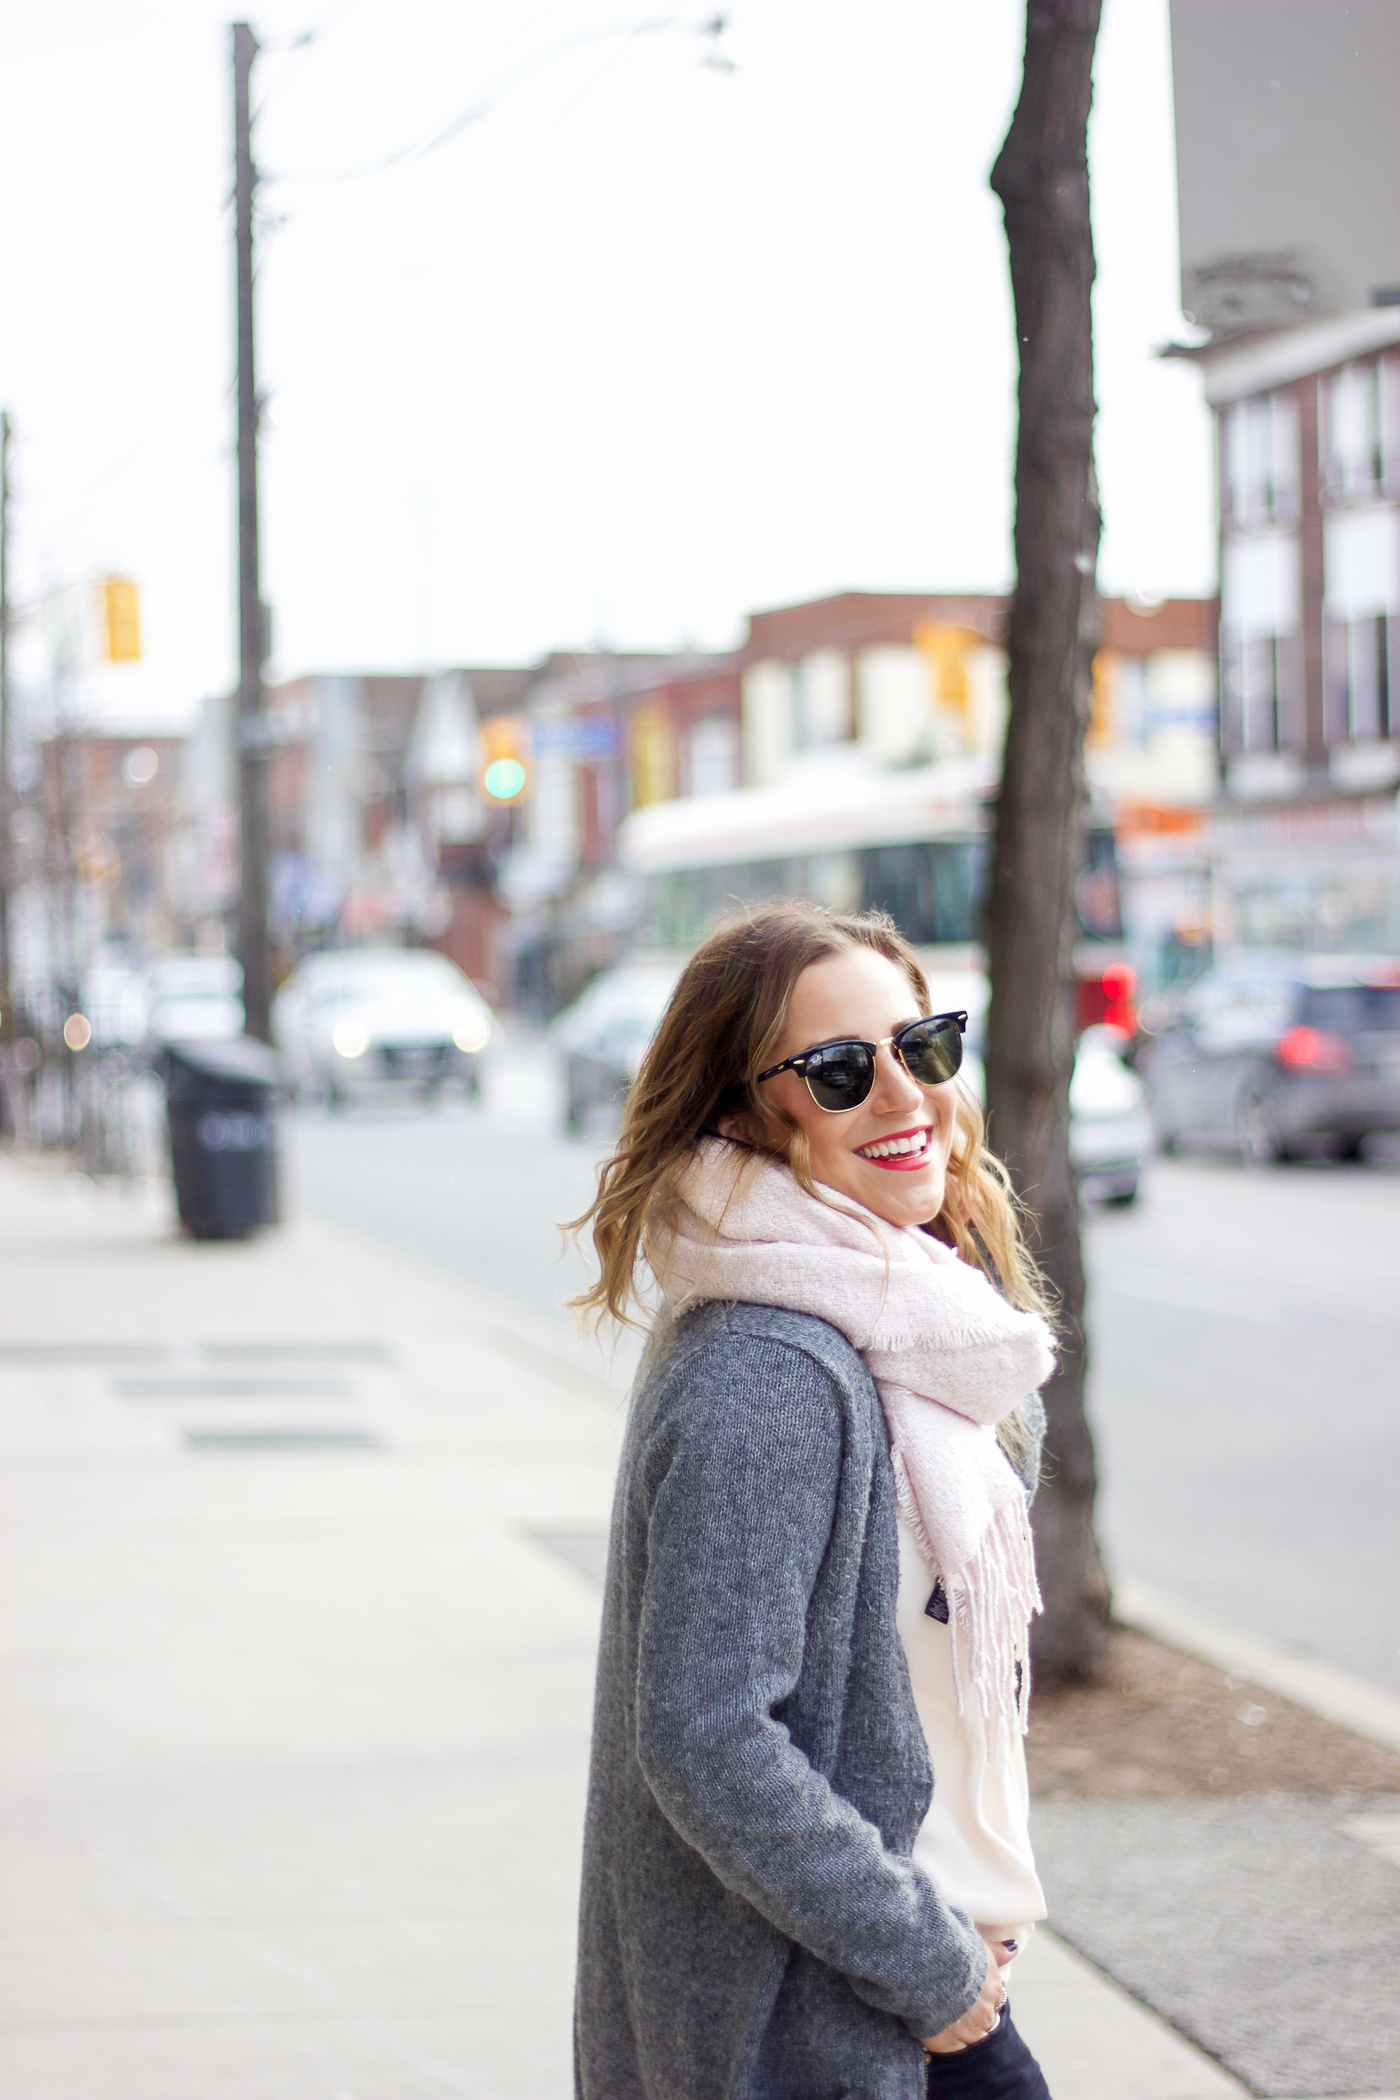 Jackie Goldhar is a Canadian fashion blogger, based out of Toronto